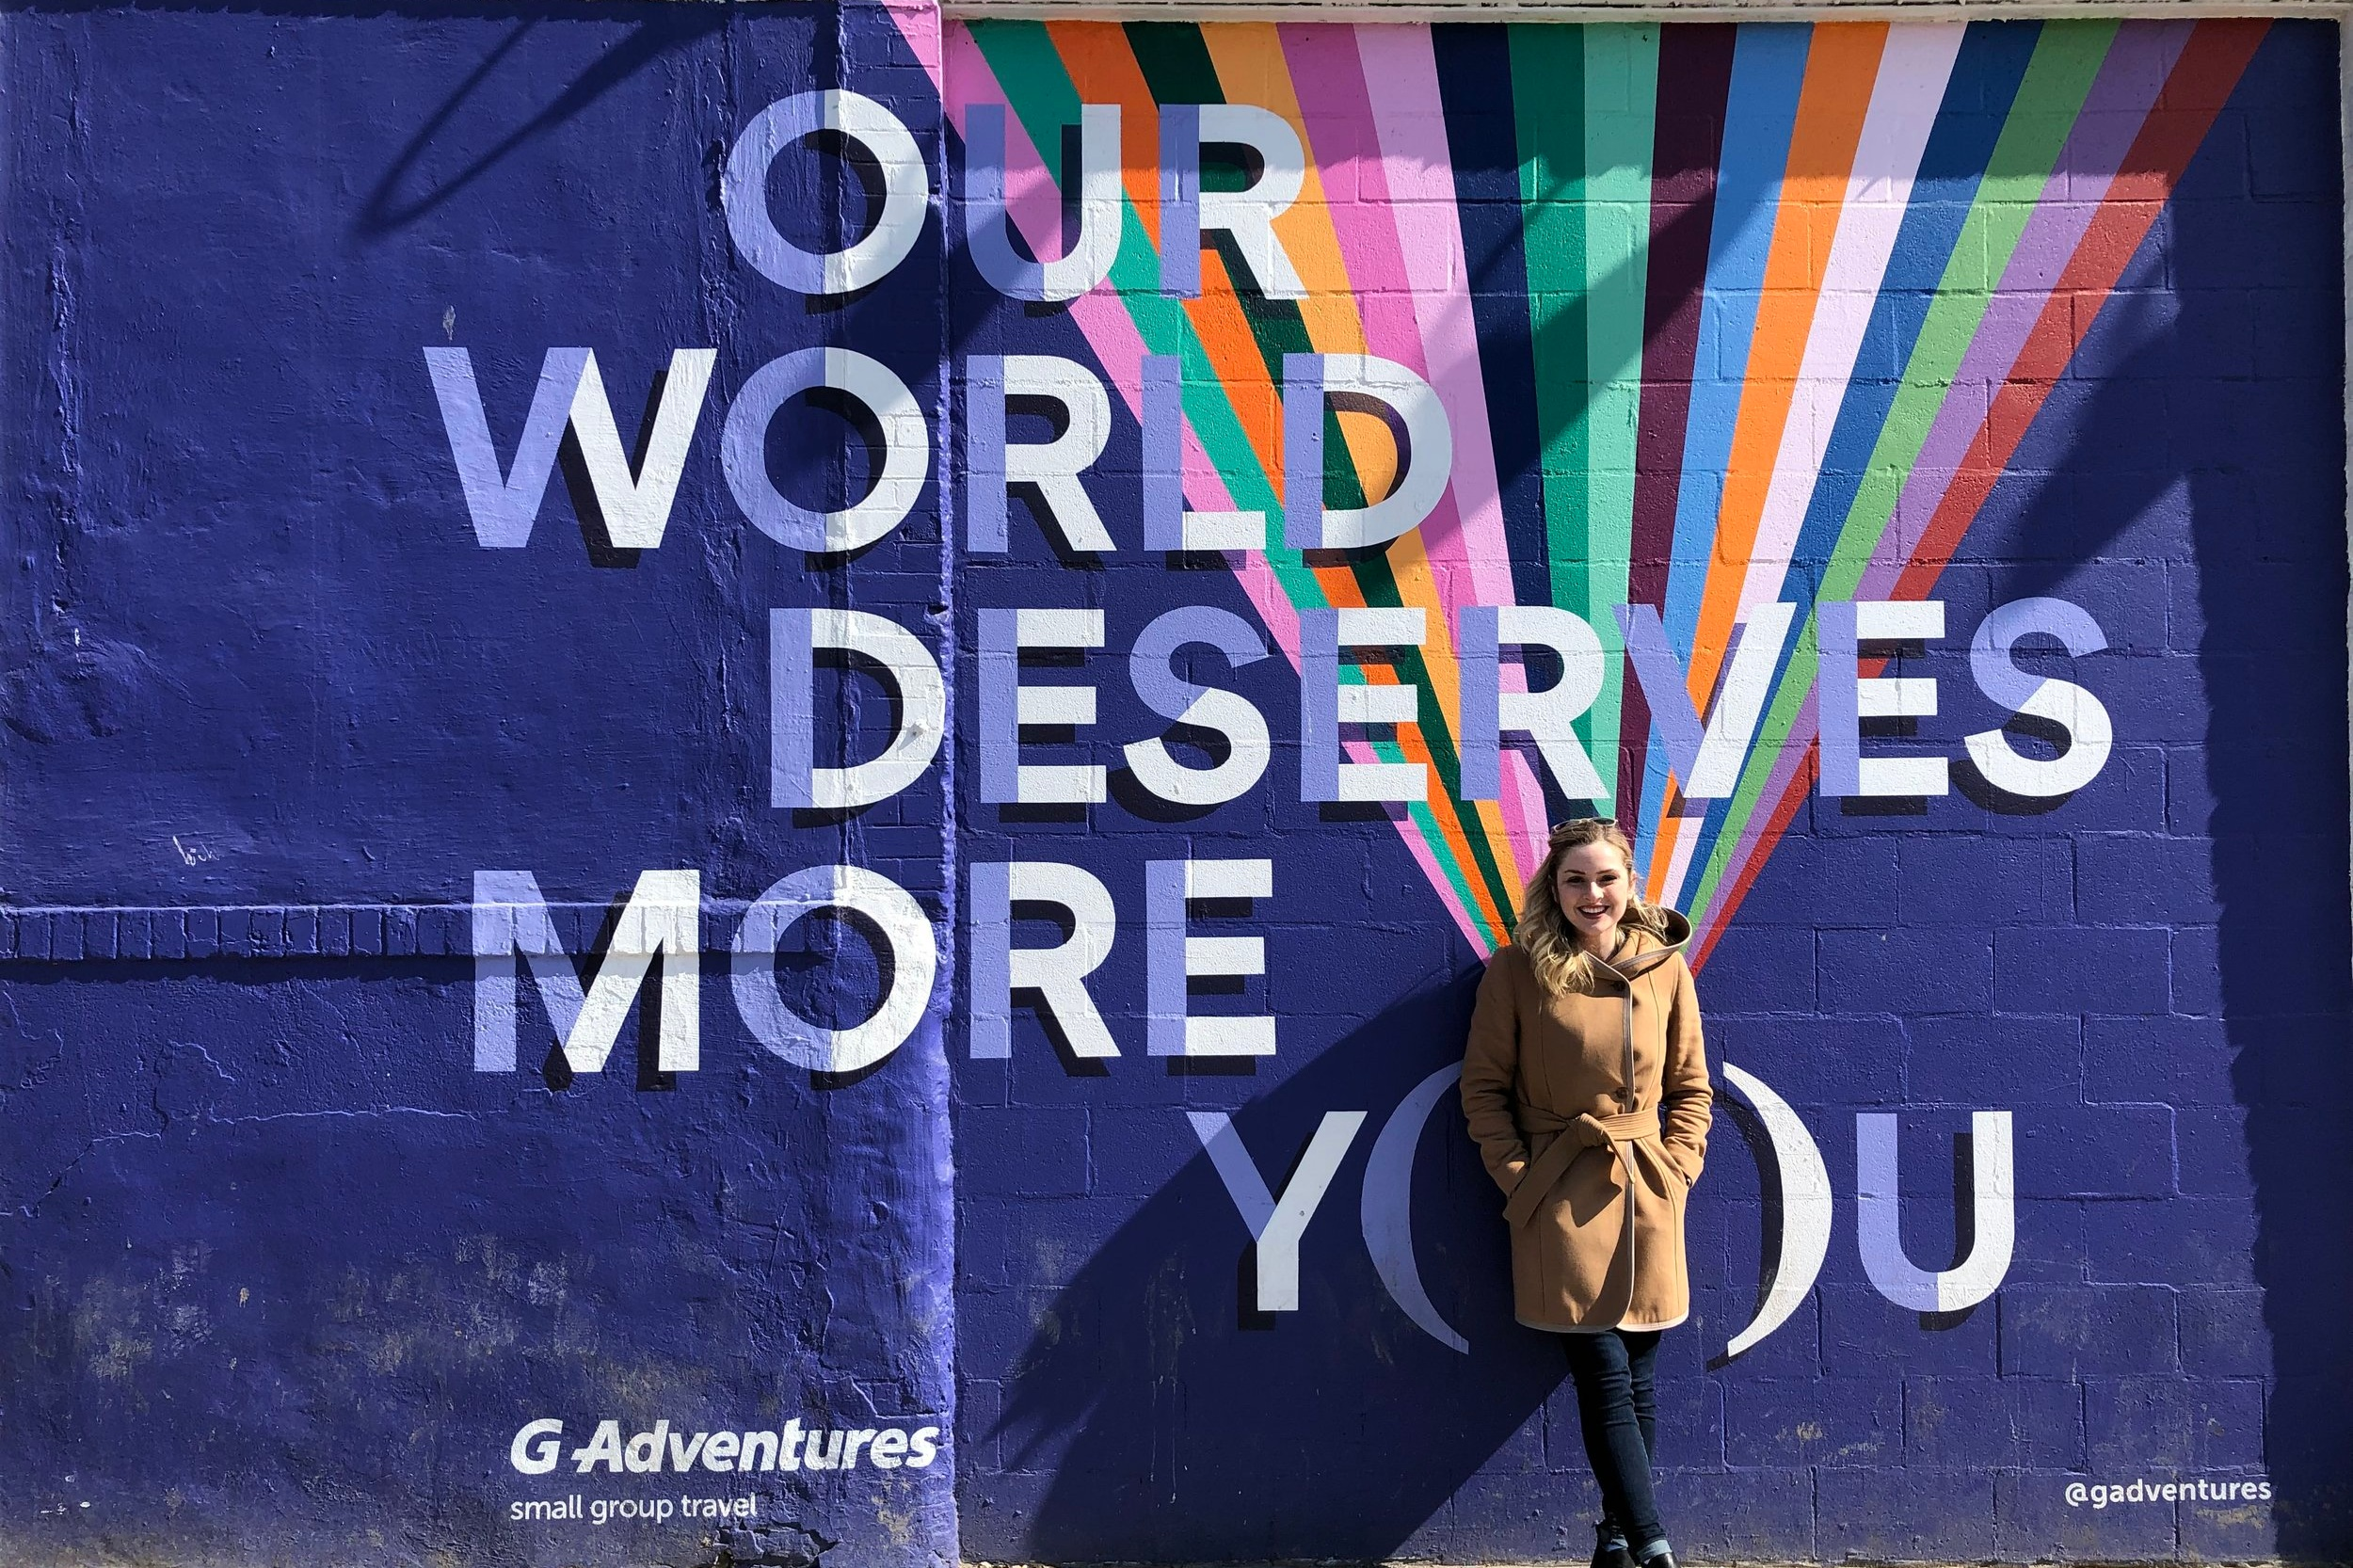 Our world deserves more (burn-out free) you. Also - no sponsorship here, just cool murals.